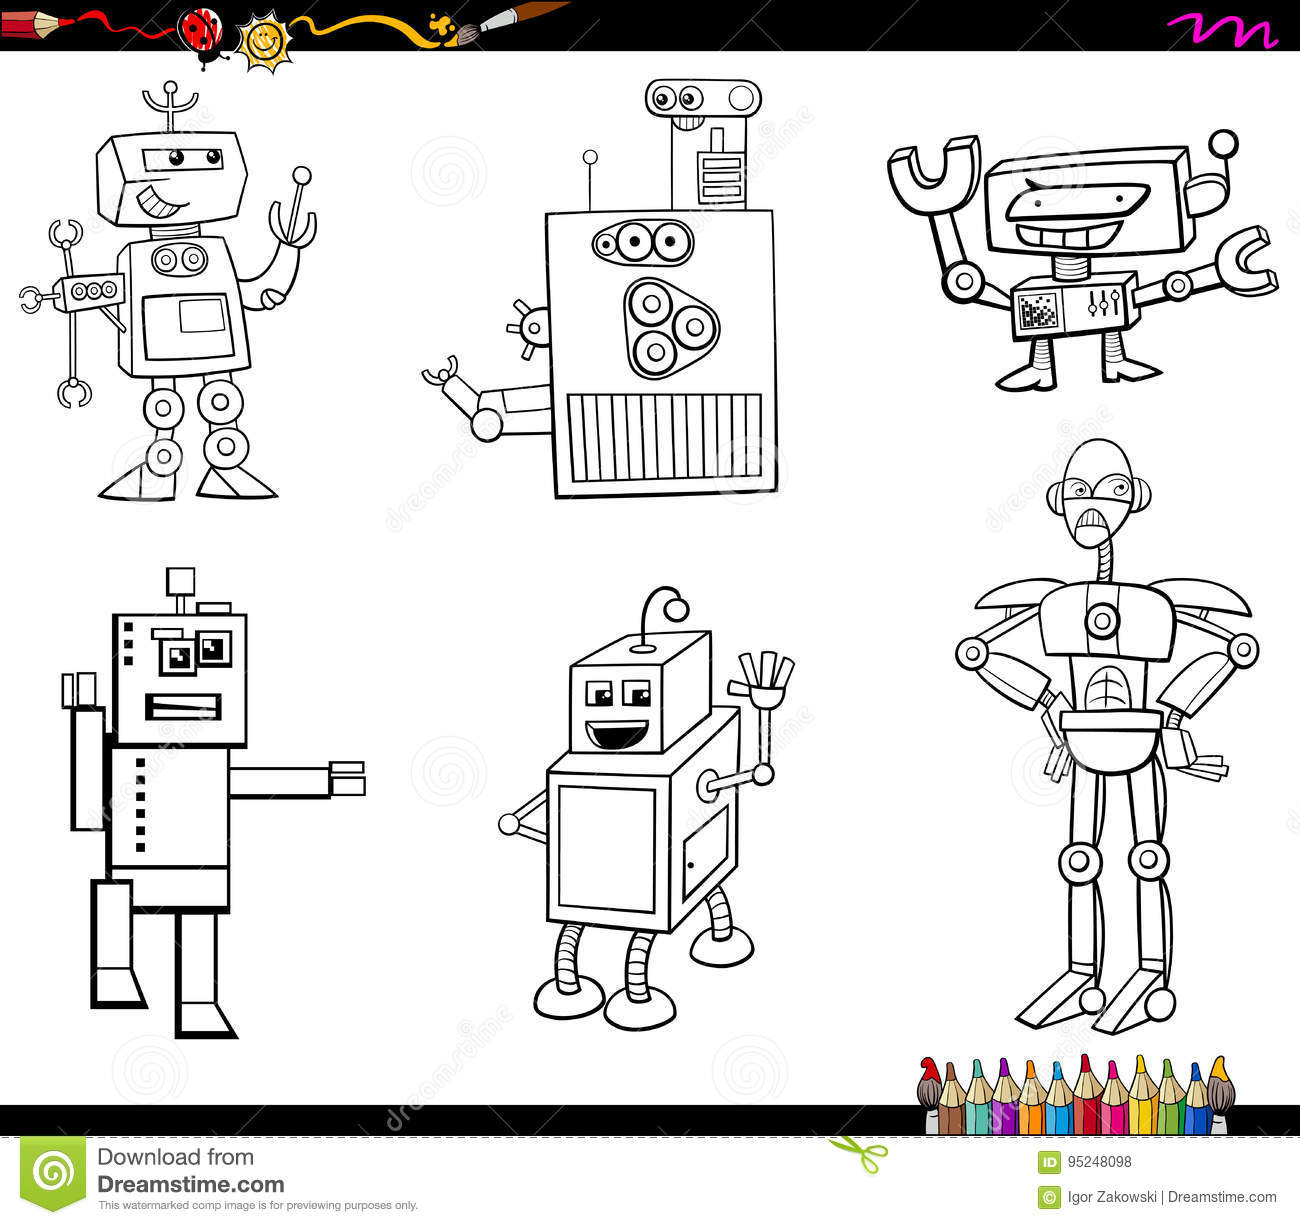 Robot Characters Coloring Book Stock Vector - Illustration of ...